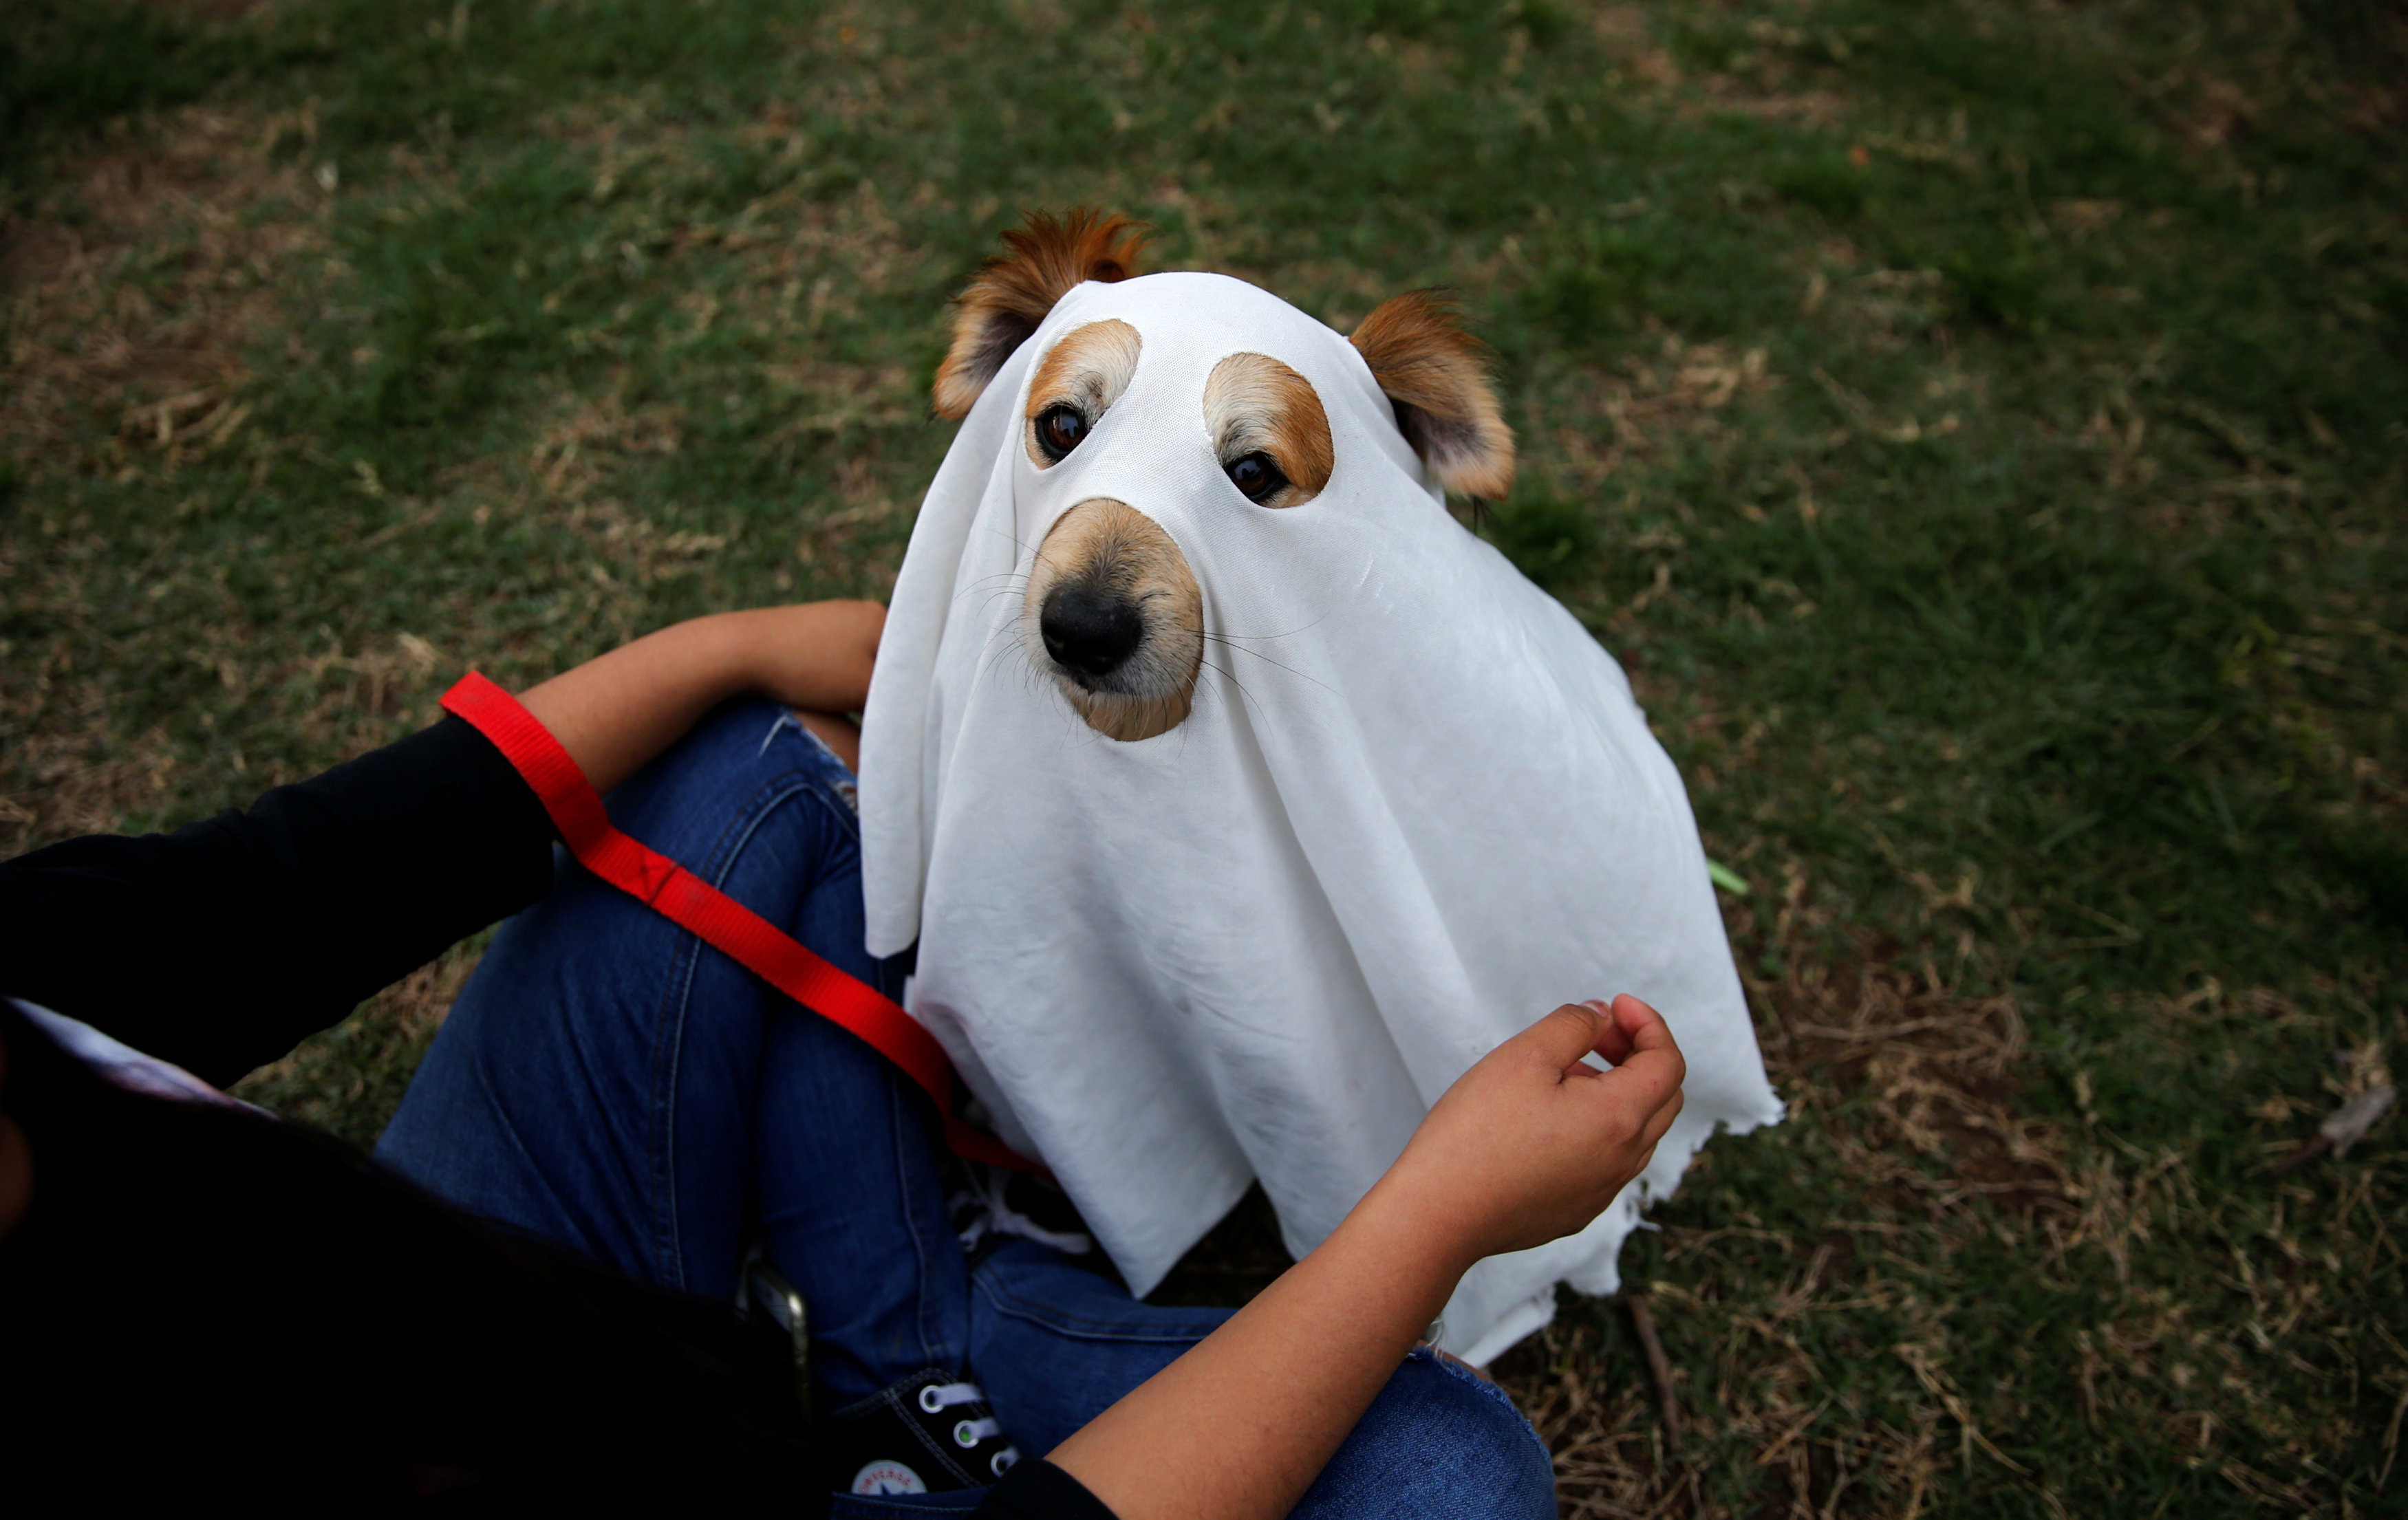 A woman dresses up her dog to celebrate Halloween at a park in Lima, Peru, October 31, 2017. REUTERS/Mariana Bazo